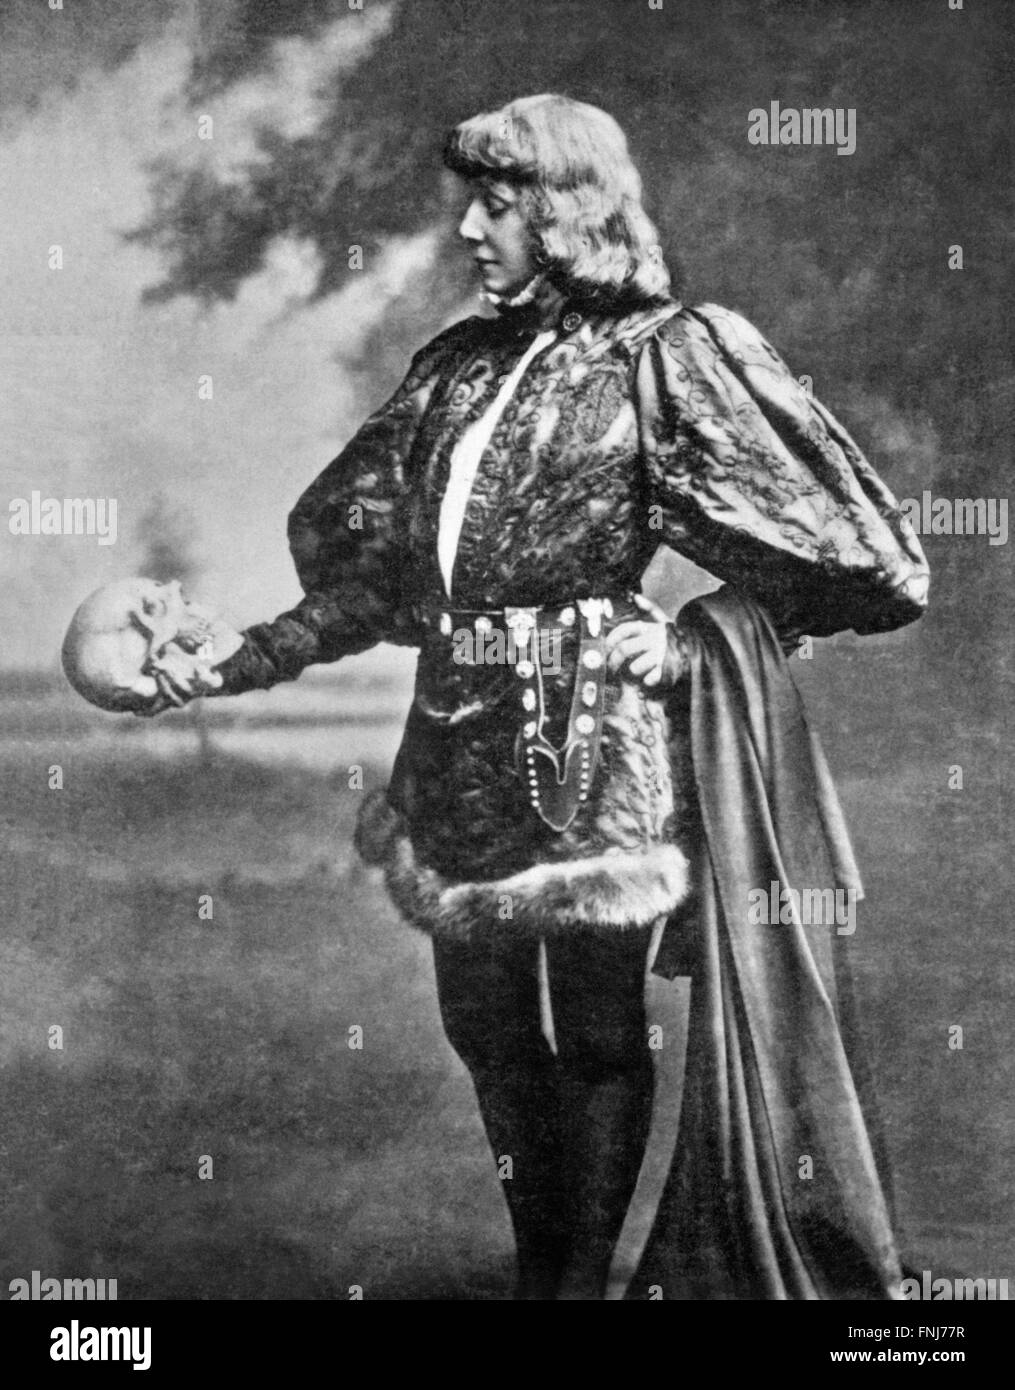 Sarah Bernhardt as Hamlet , c.1899 - Stock Image